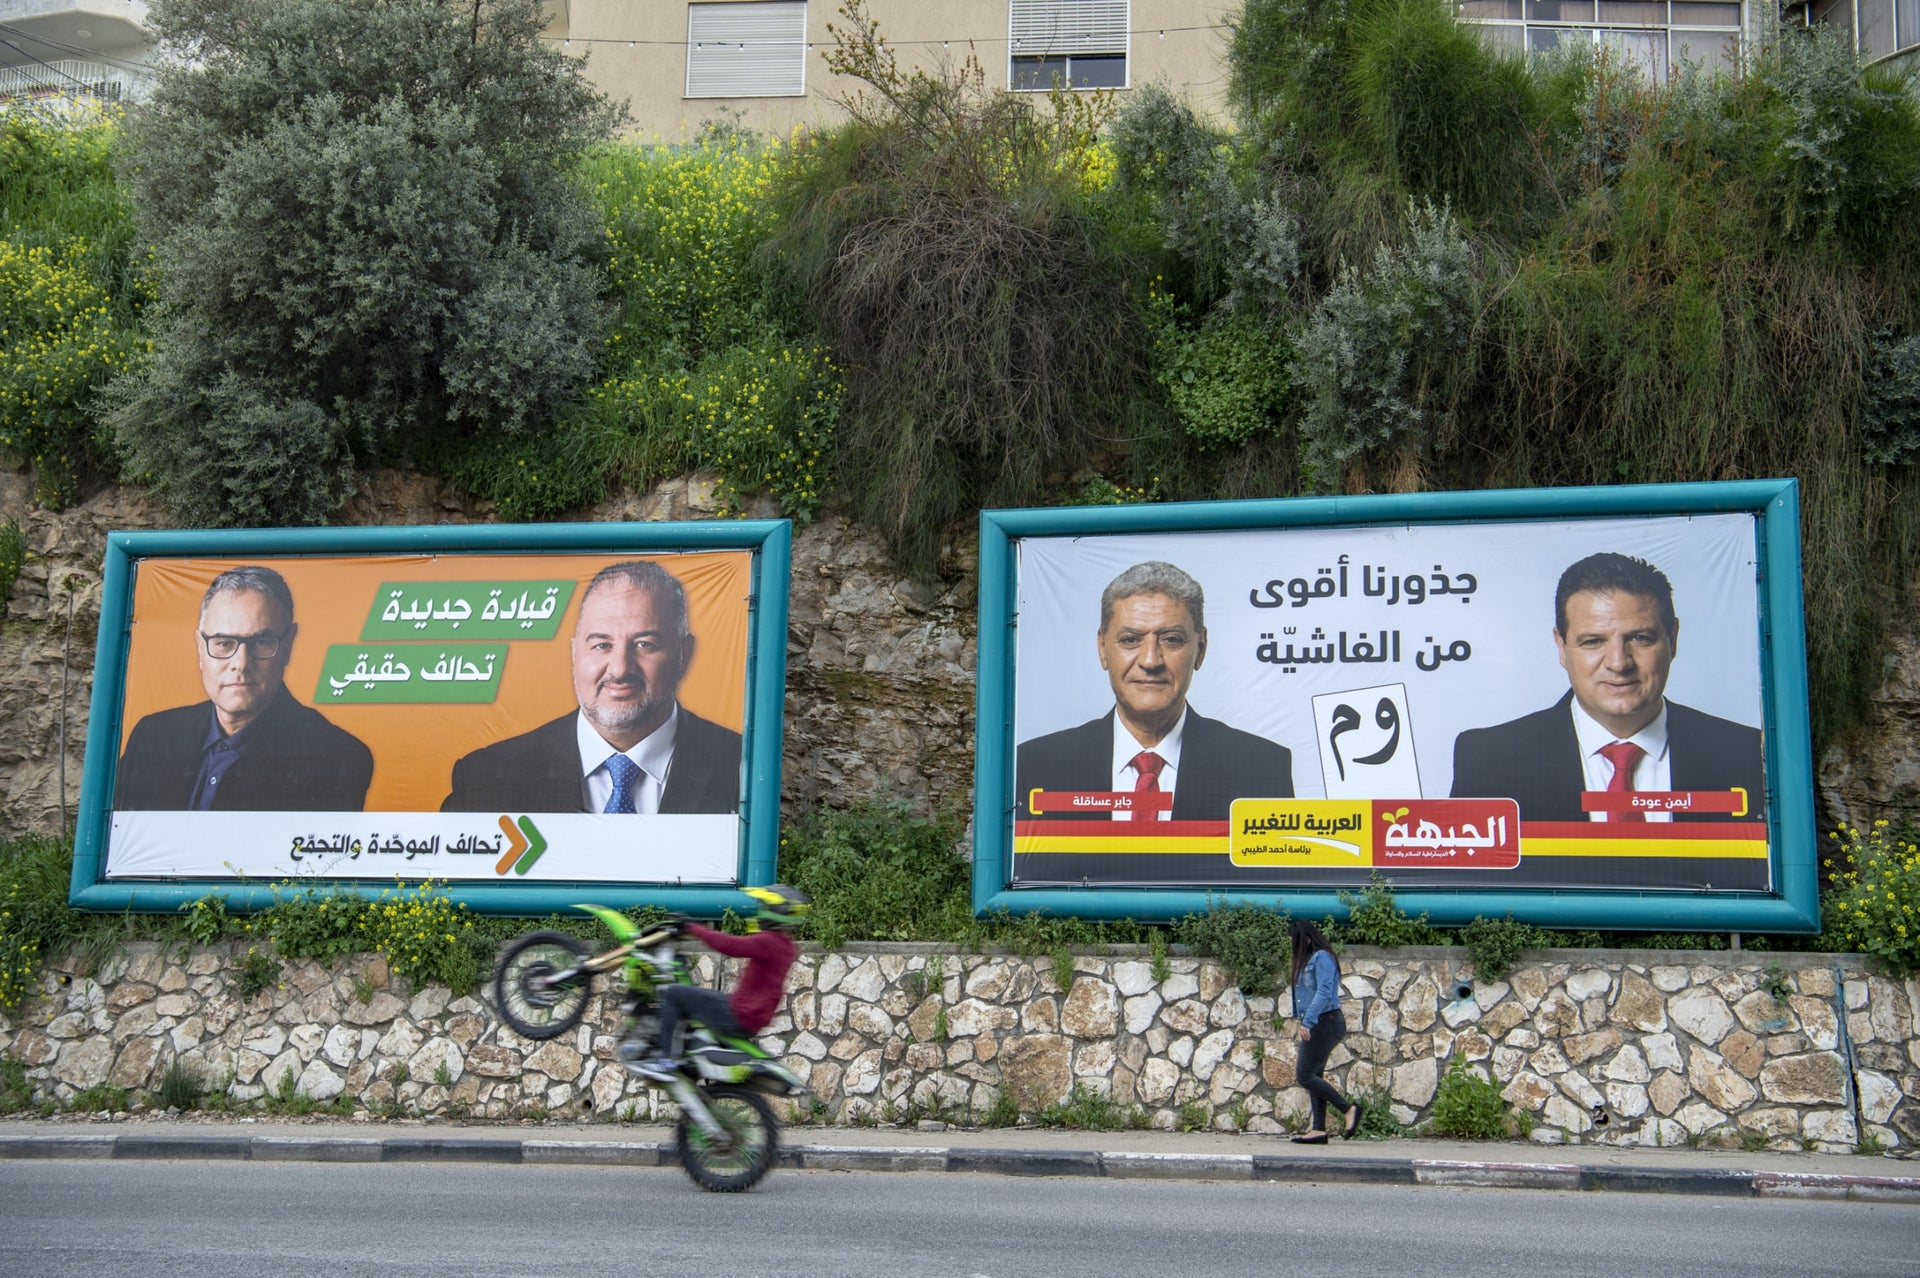 Rival ads in Nazareth for the Balad-United Arab List and Hadash-Ta'al parties, March 28, 2019.